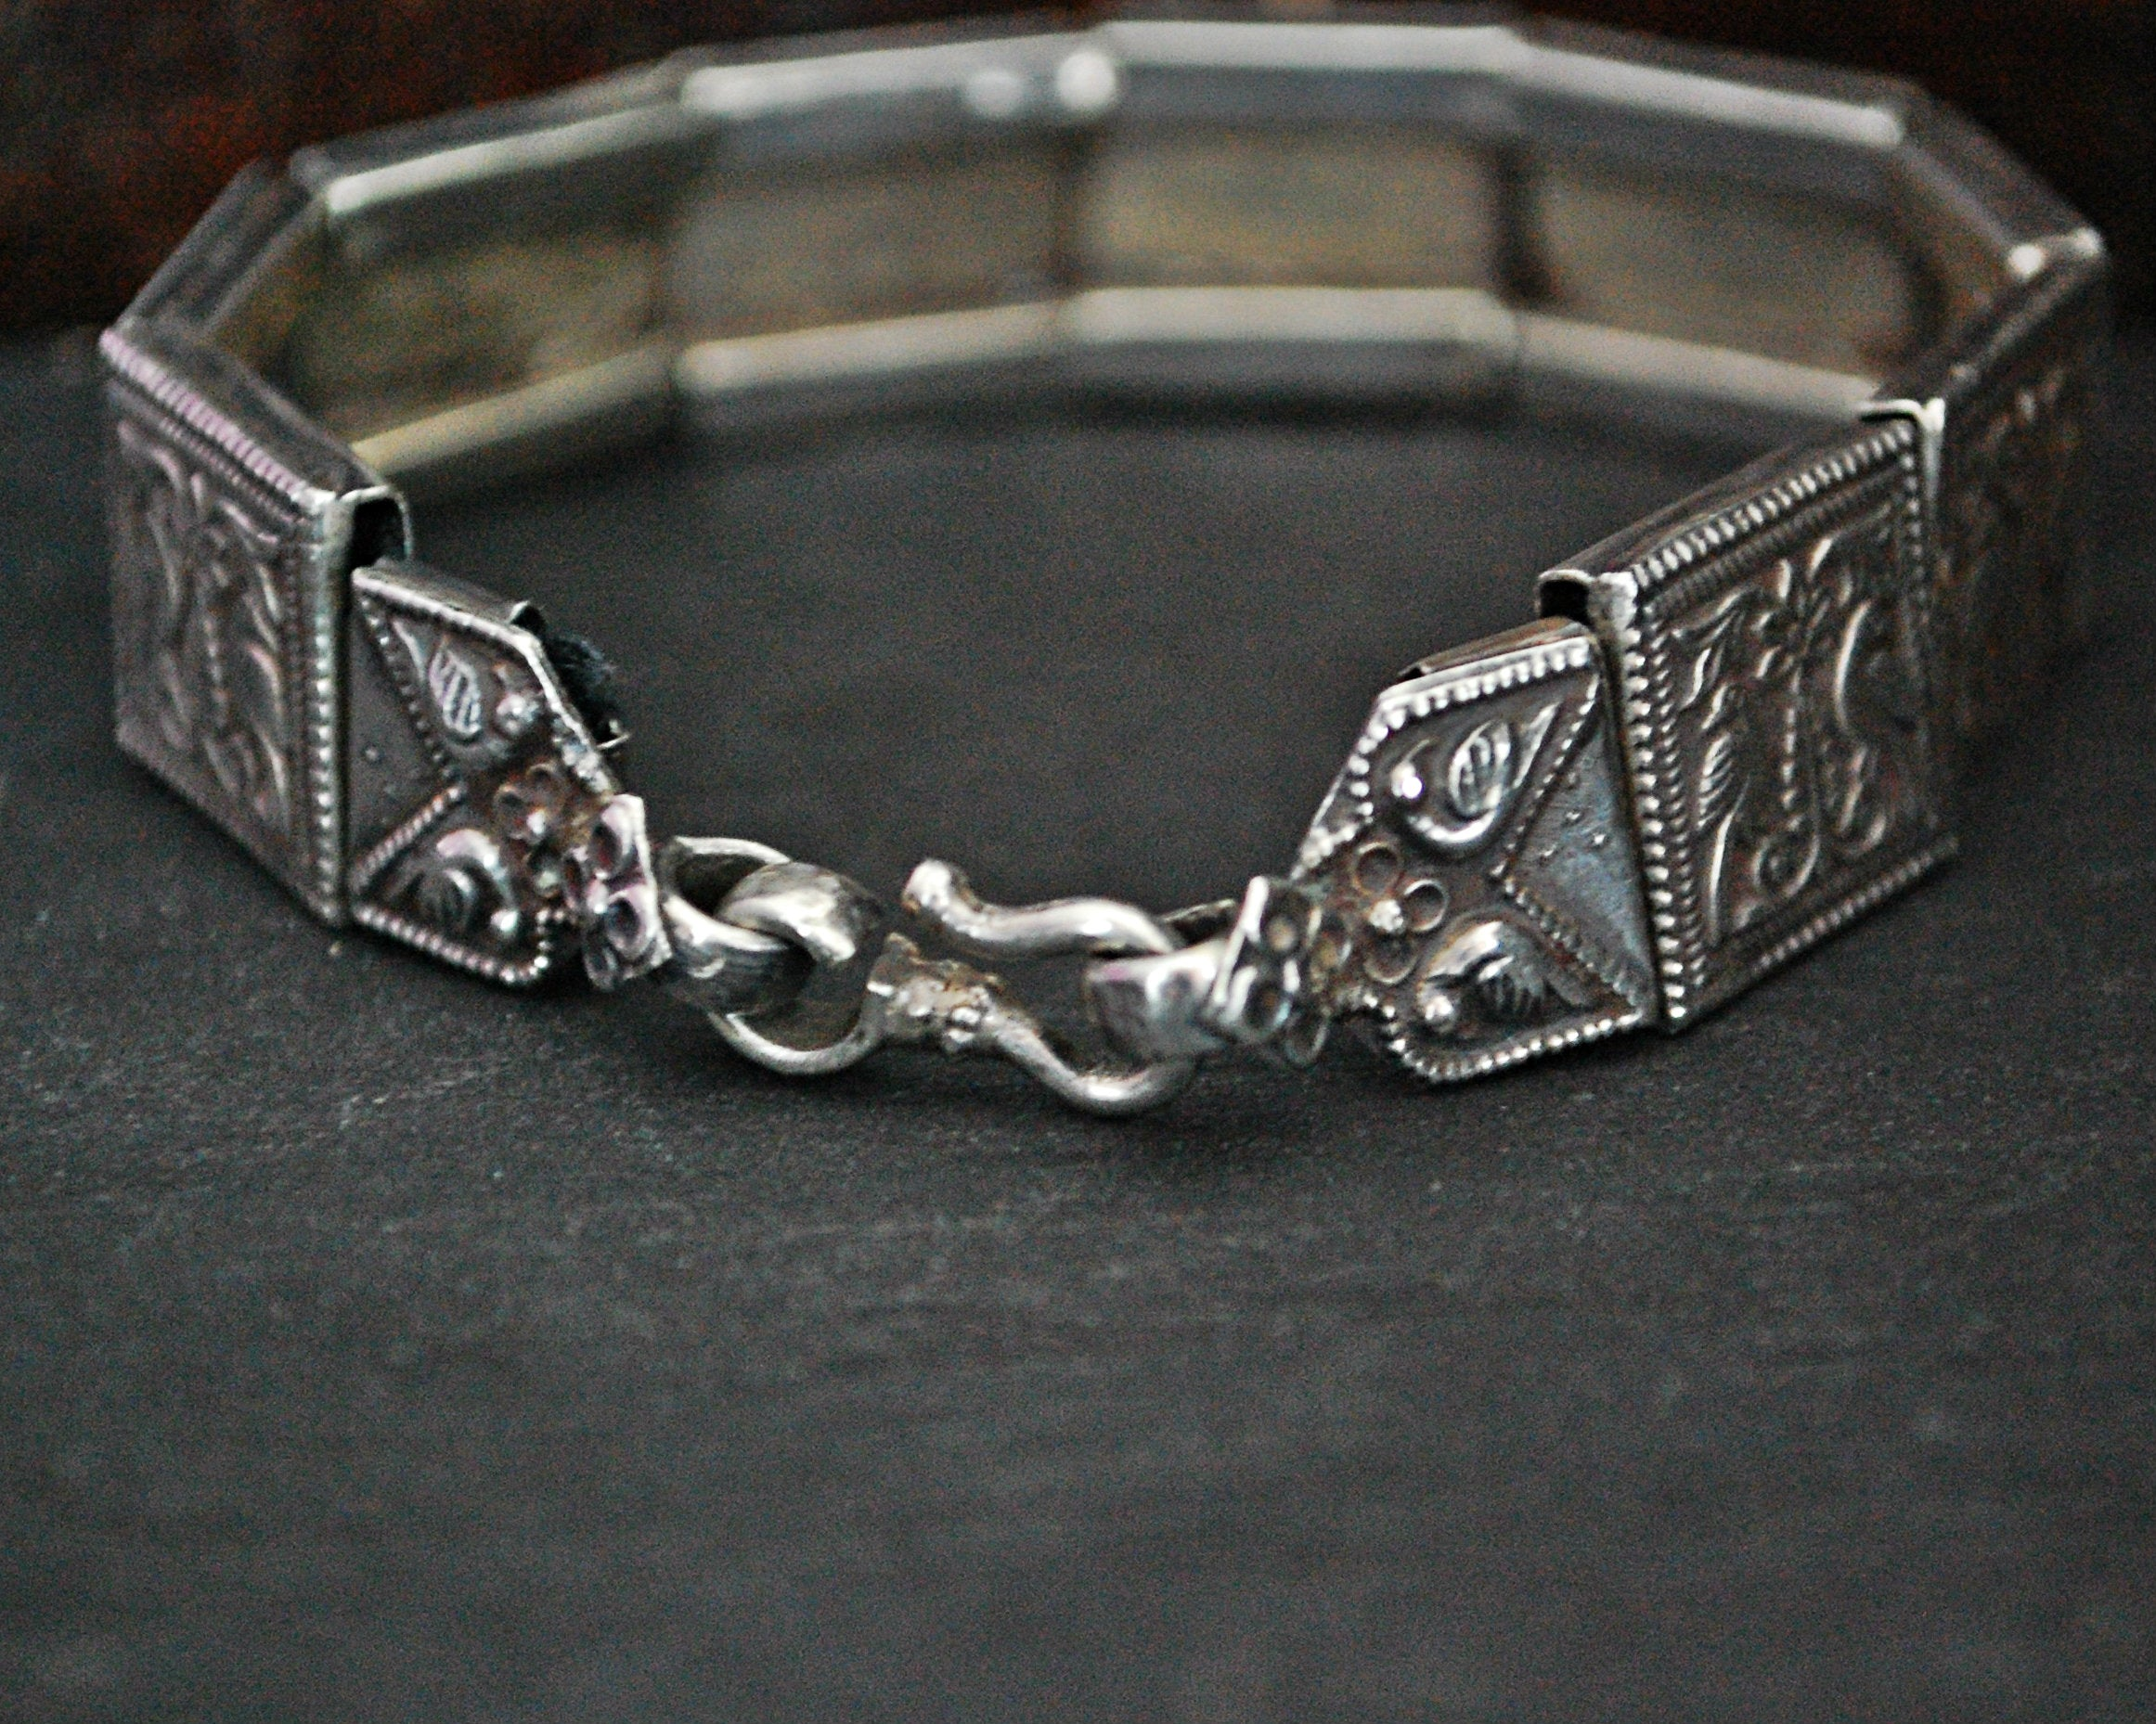 Rajasthani Silver Bracelet with Peacocks